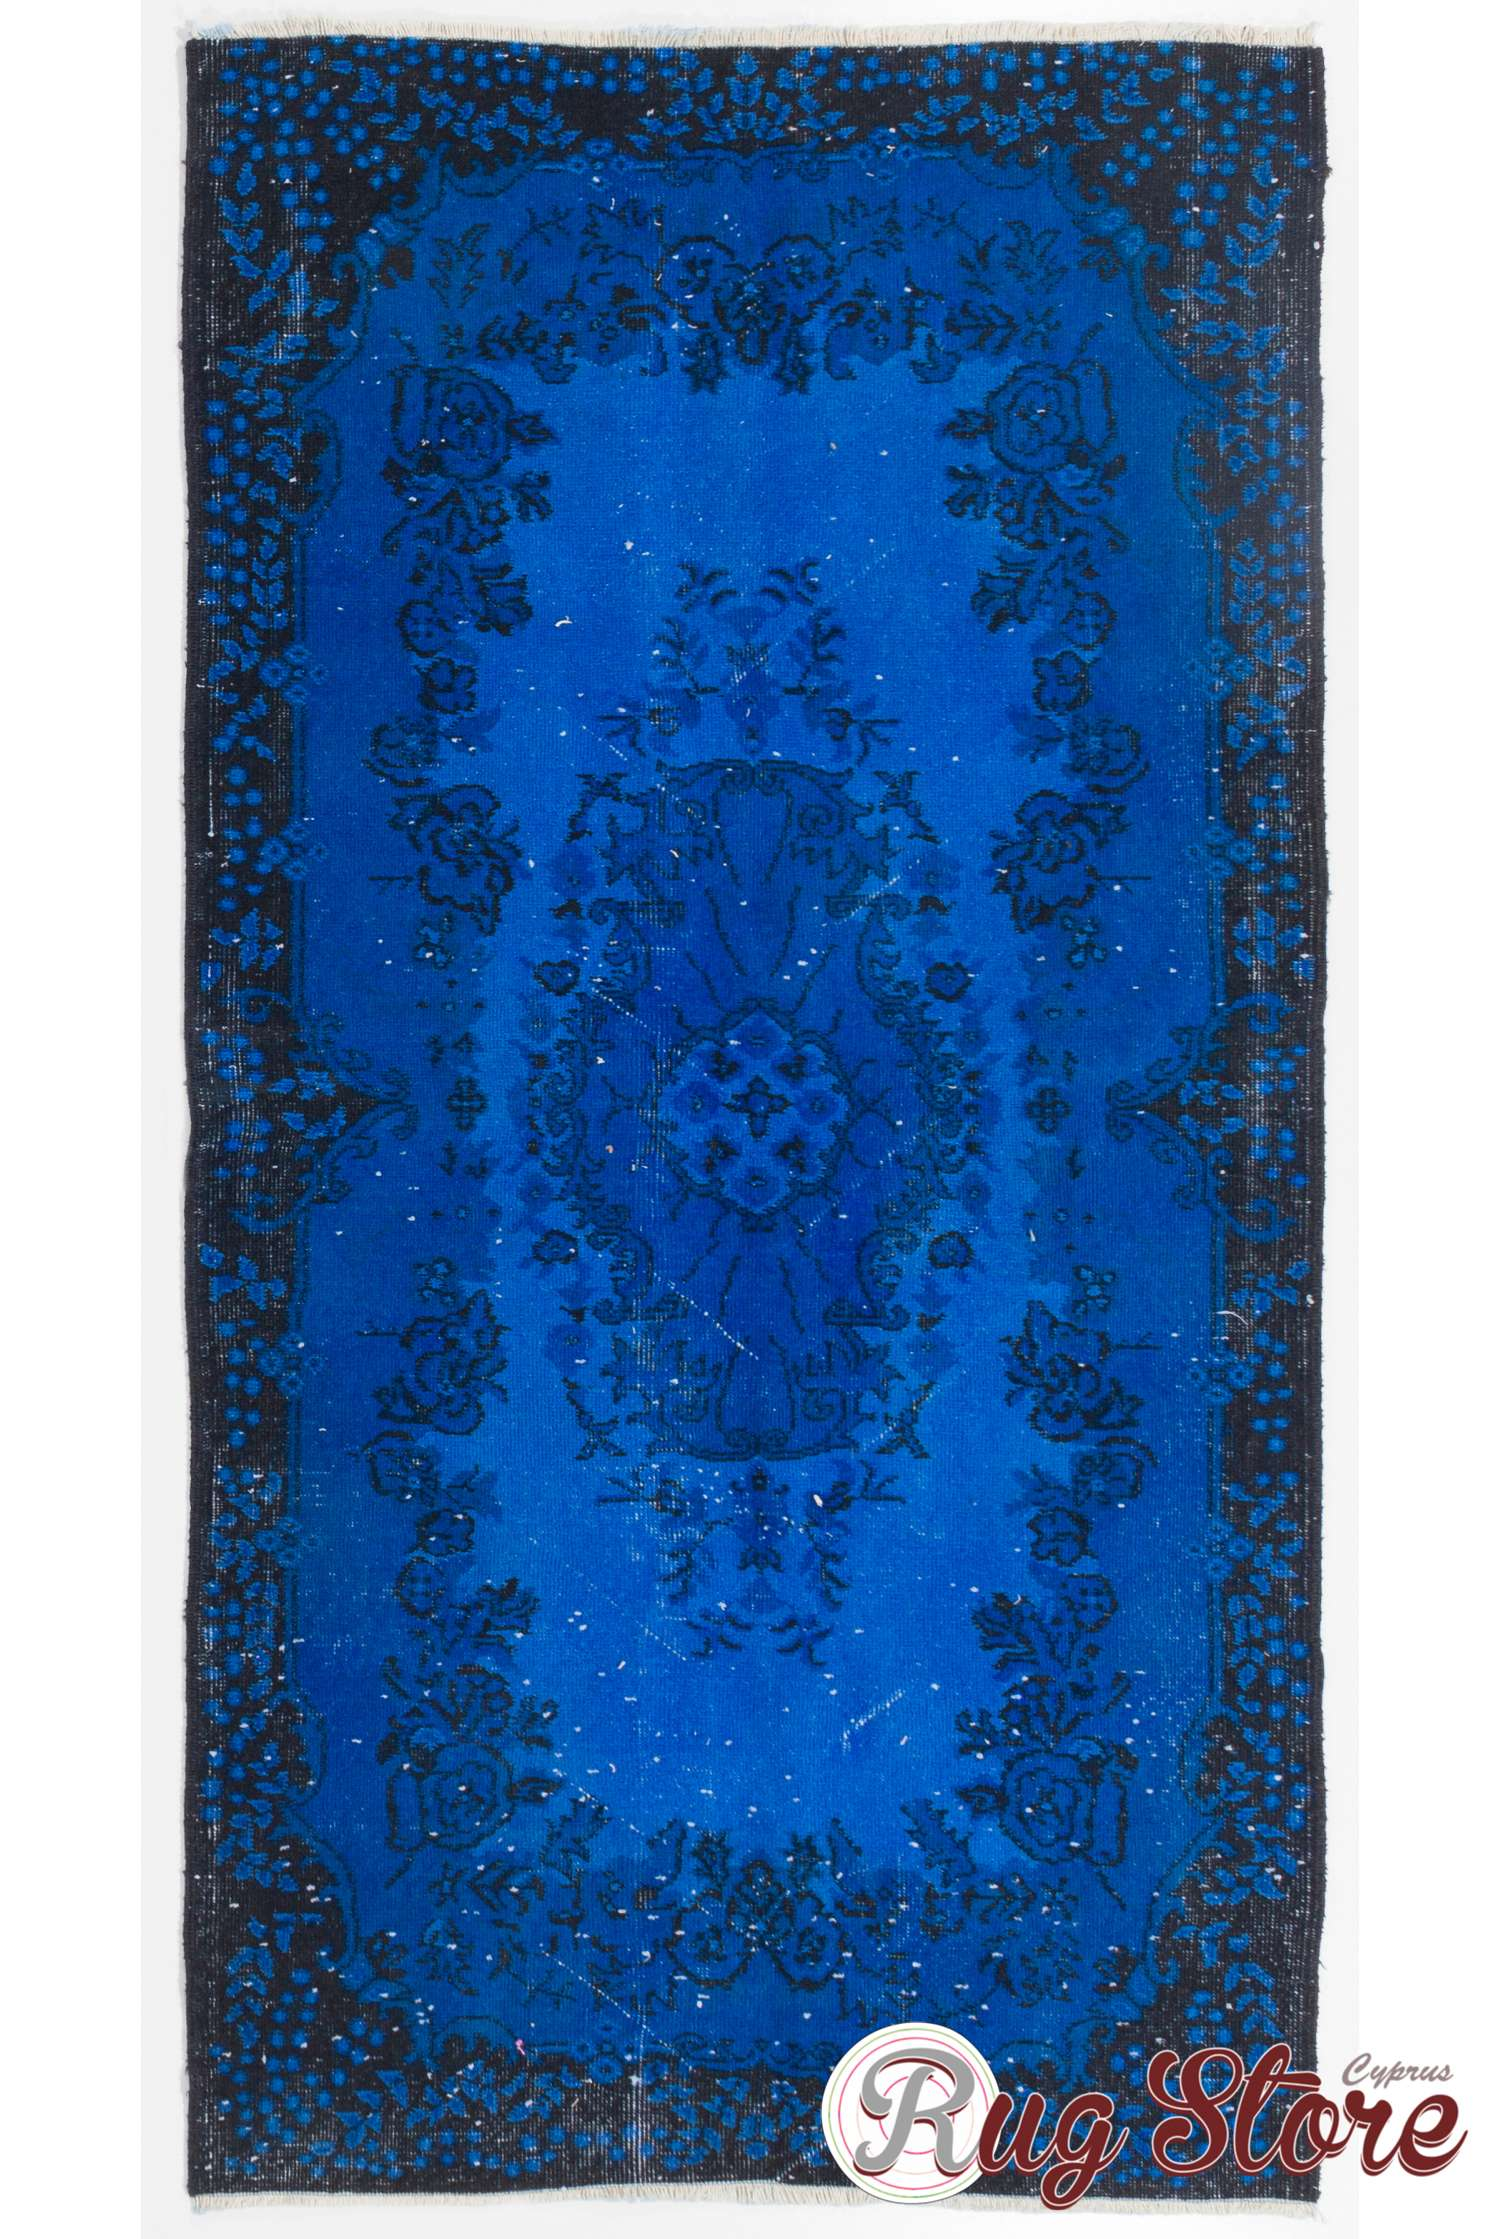 Cobalt Blue Color Vintage Overdyed Handmade Turkish Rug Vintage Overdyed Rug From Turkey